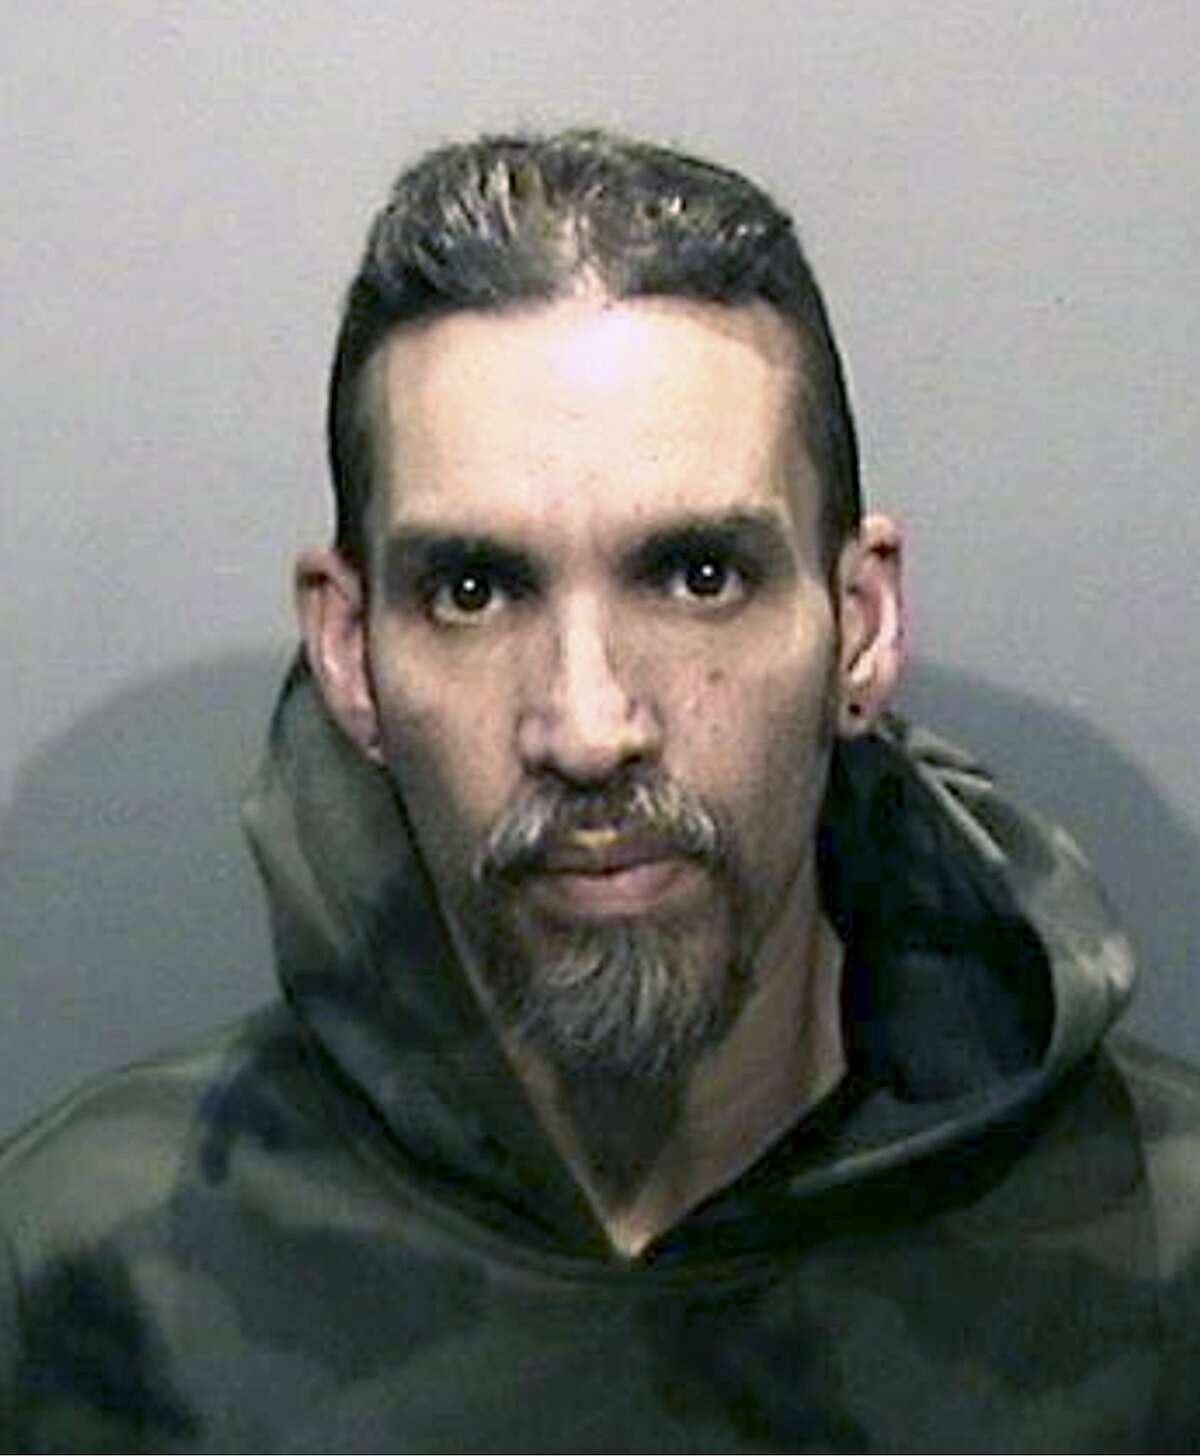 FILE - This Monday, June 5, 2017, file photo released by the Alameda County Sheriff's Office shows Derick Almena at Santa Rita Jail in Alameda County, Calif.